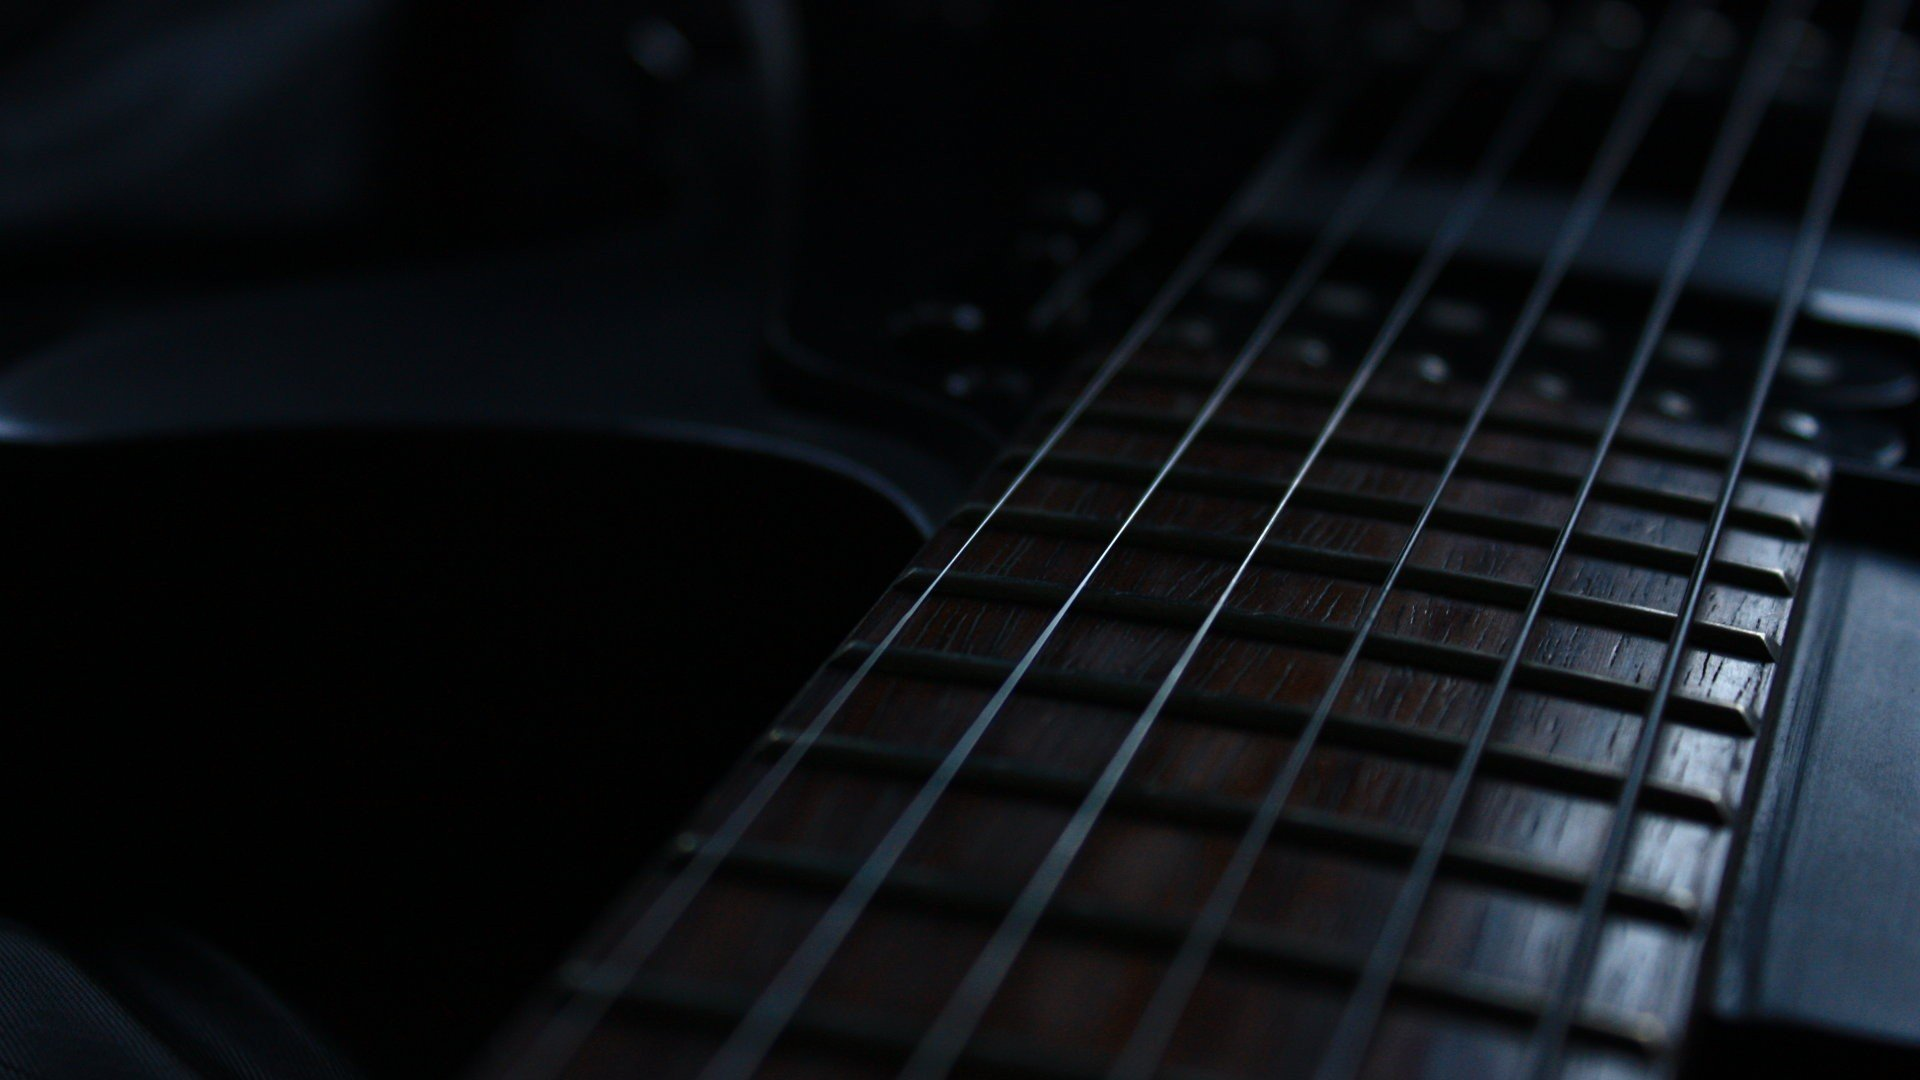 guitar wallpaper hd wallpapersafari